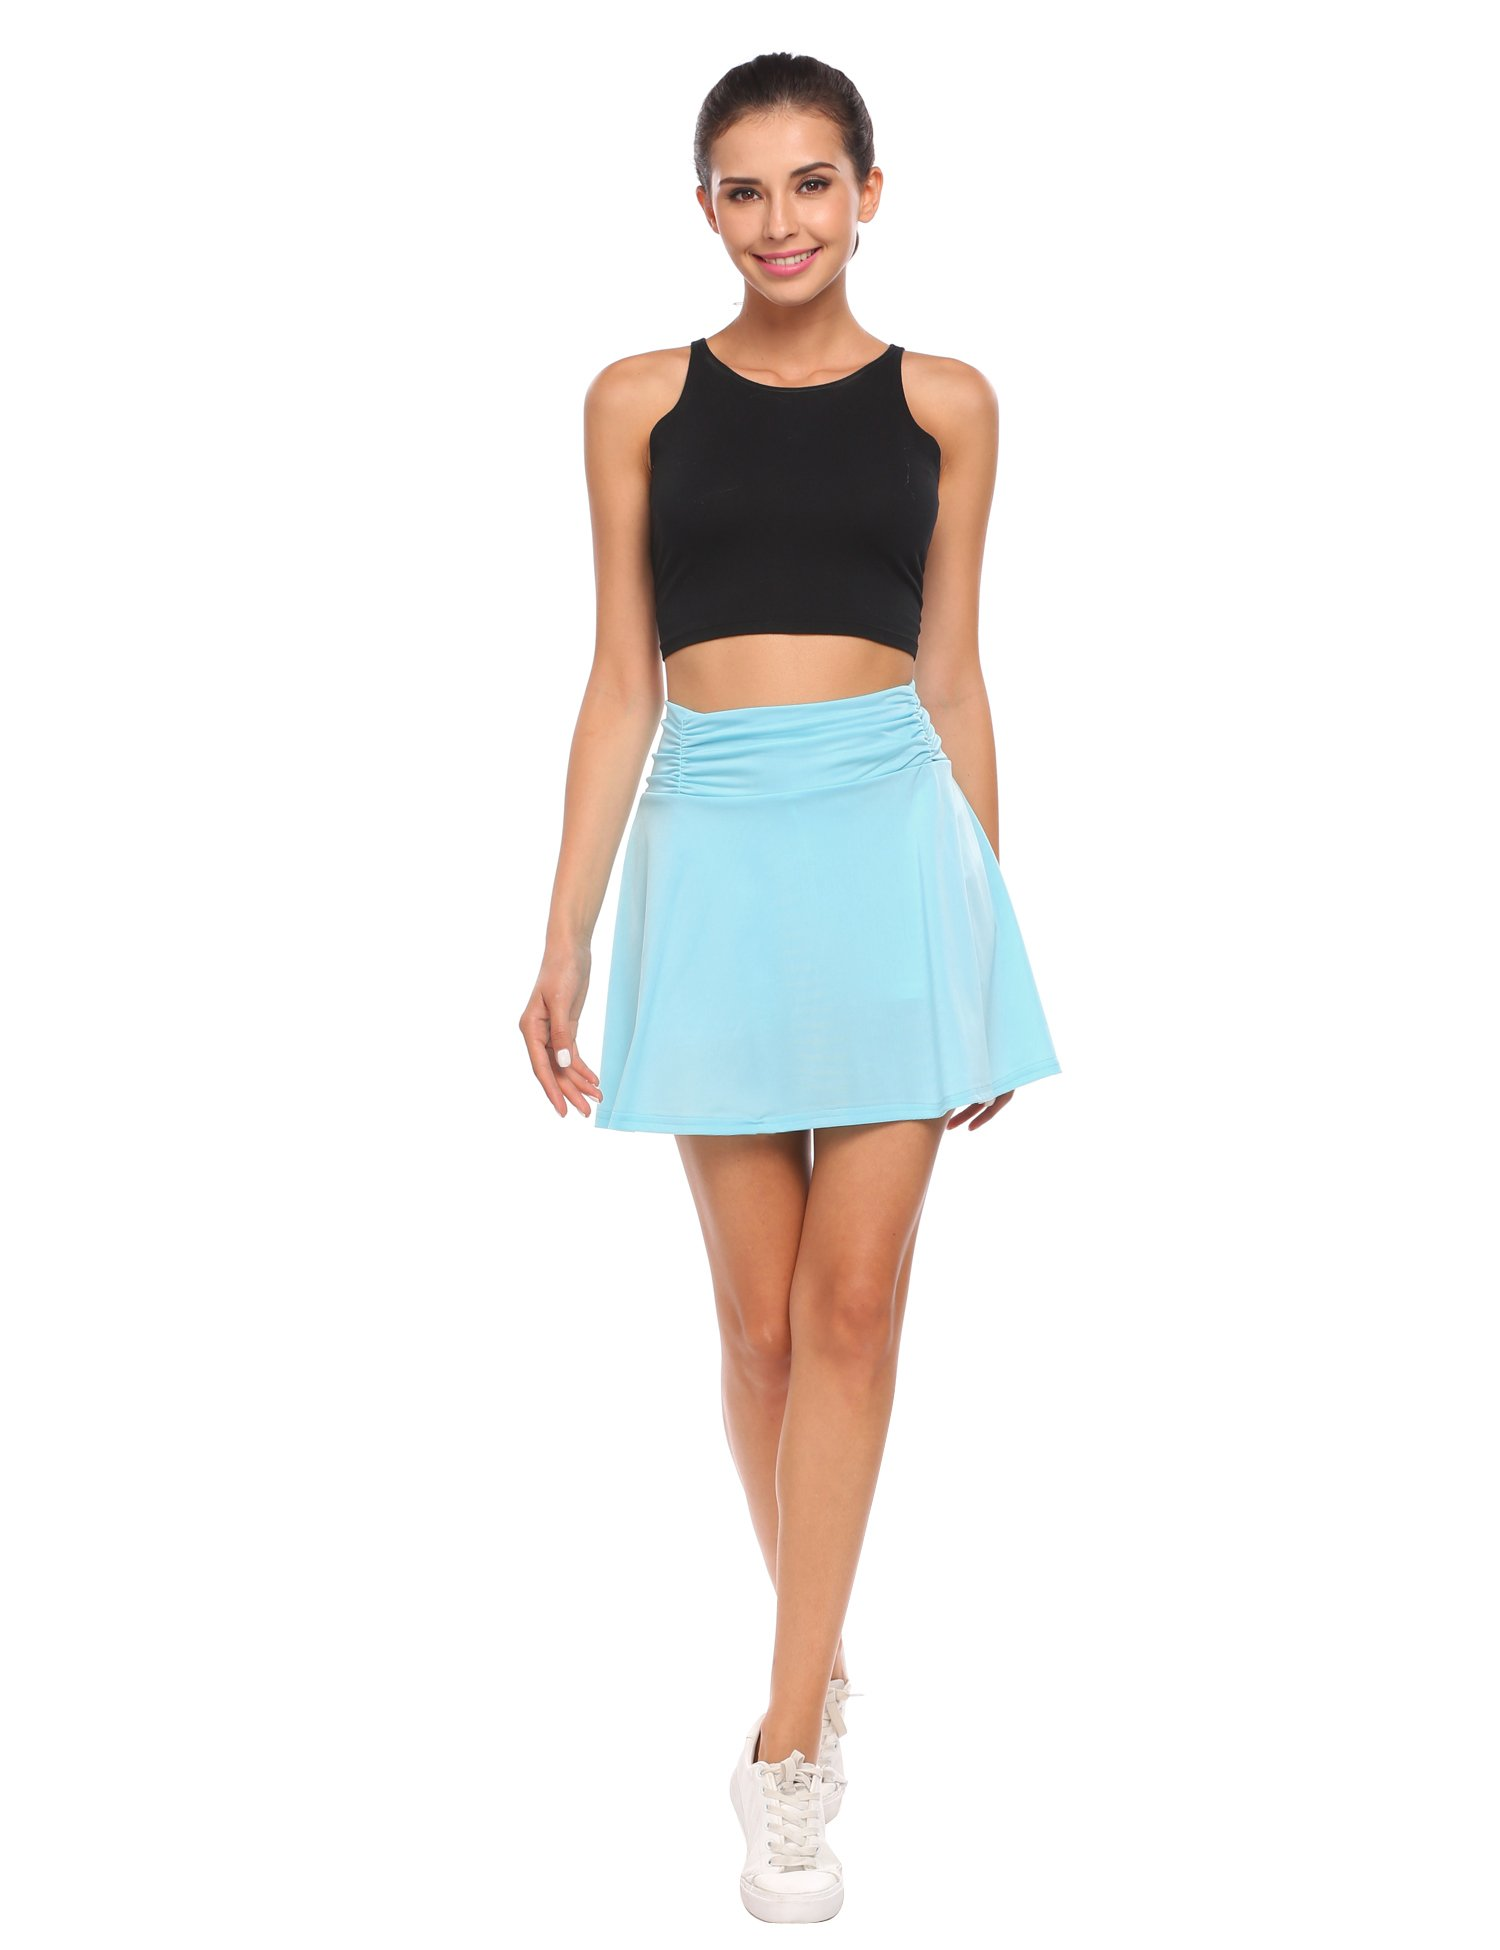 ANGVNS Ladies Active Fitness Athletic Skirt with Skort for Gym Tennis Golf